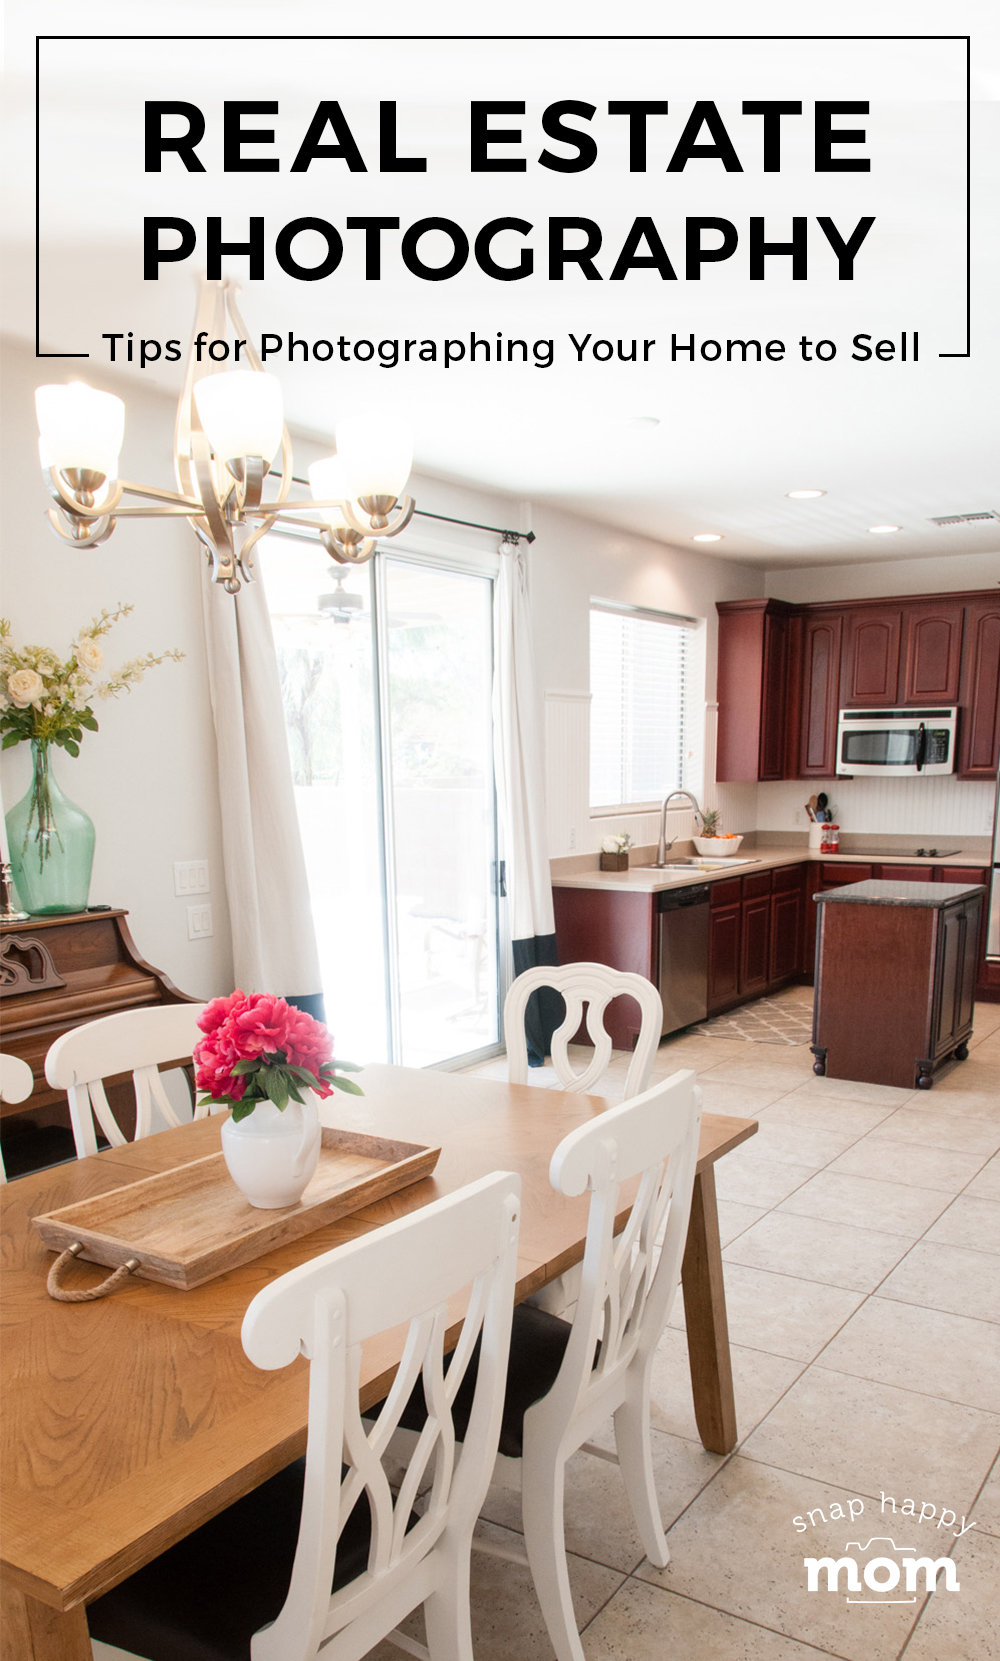 Selling Your Home: How Photograph the Interior of Your Home for Real Estate Photography